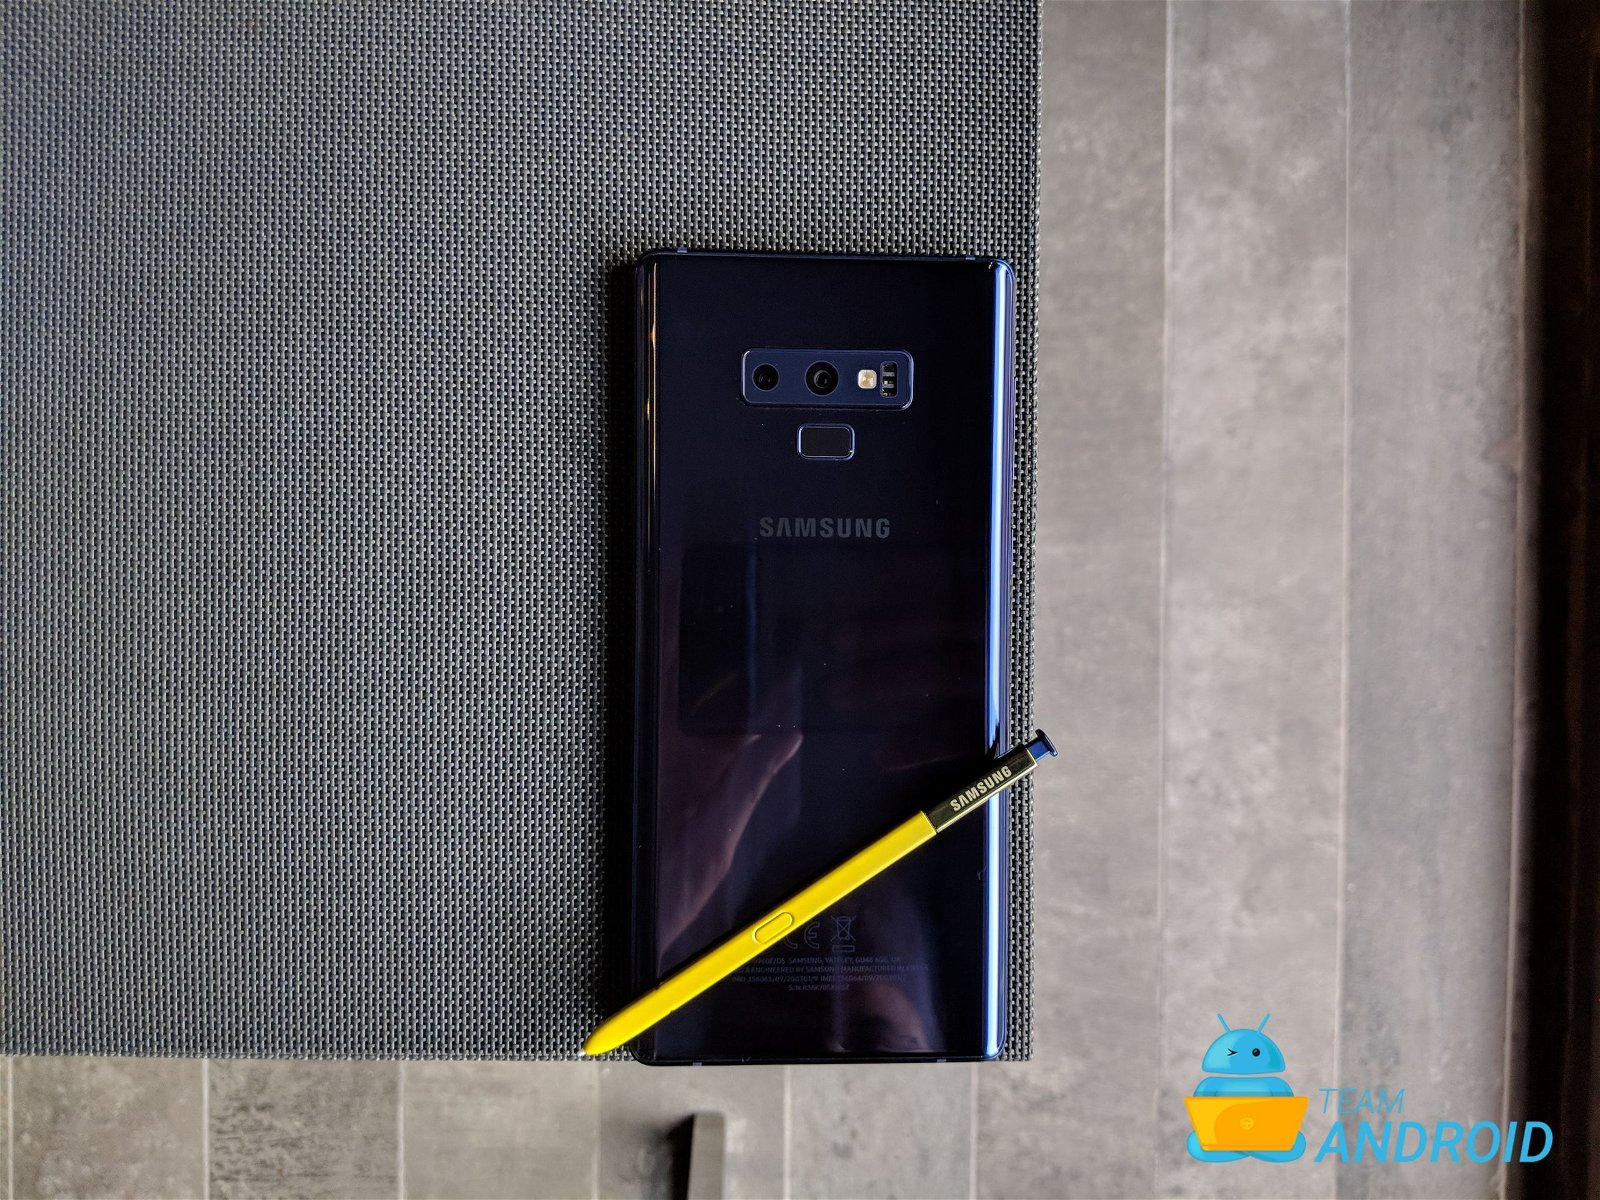 How to Remap Bixby Button on Samsung Galaxy Note 9 - Bixby 2.0 3